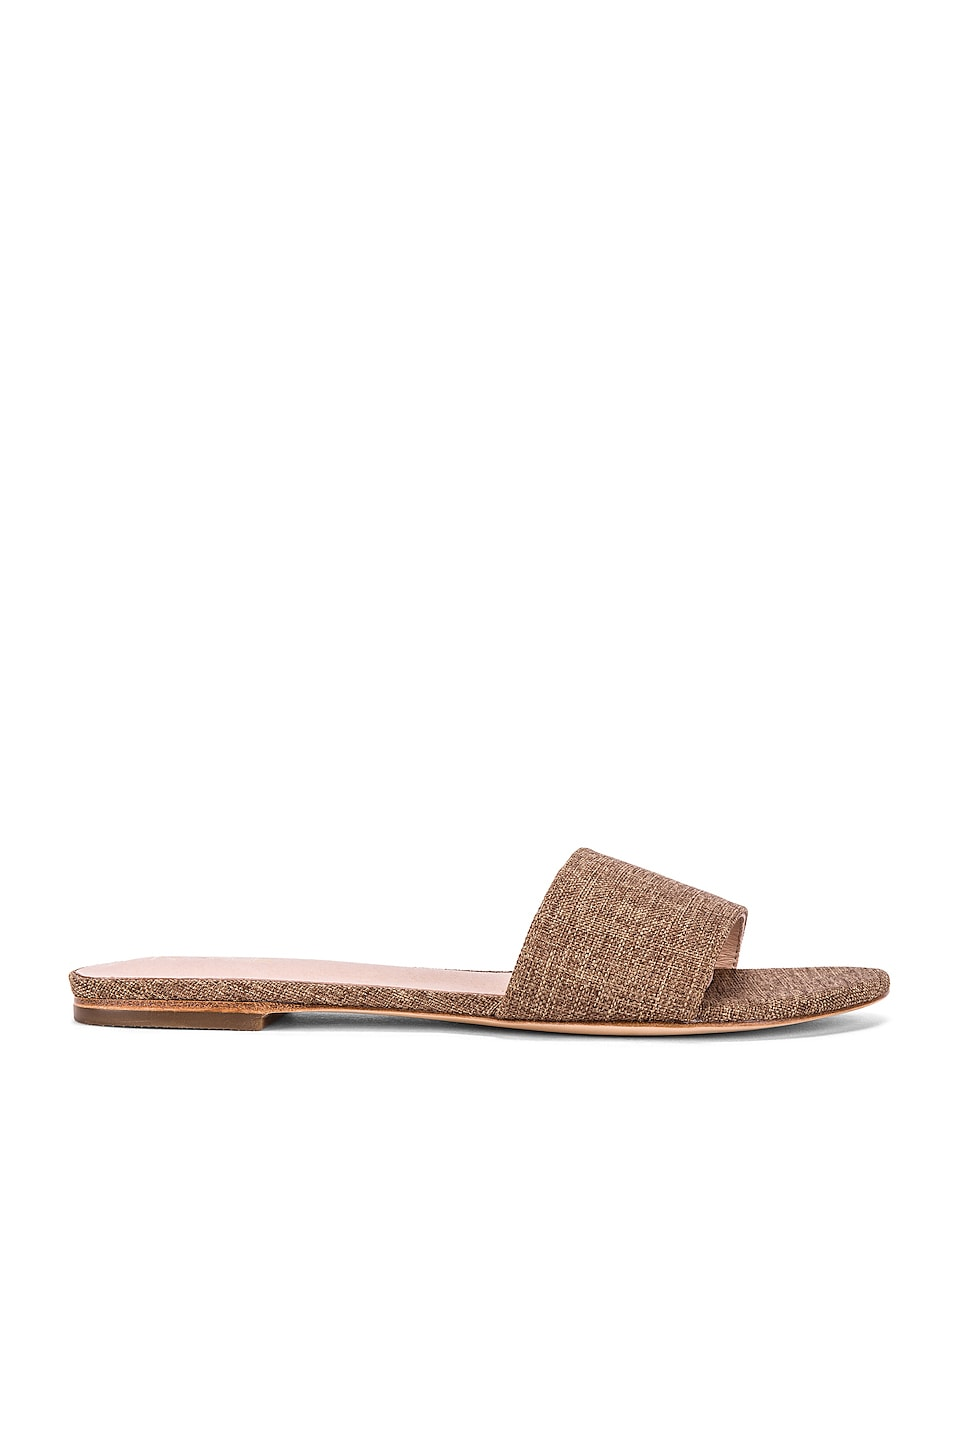 RAYE Tula Sandal in Coffee Brown